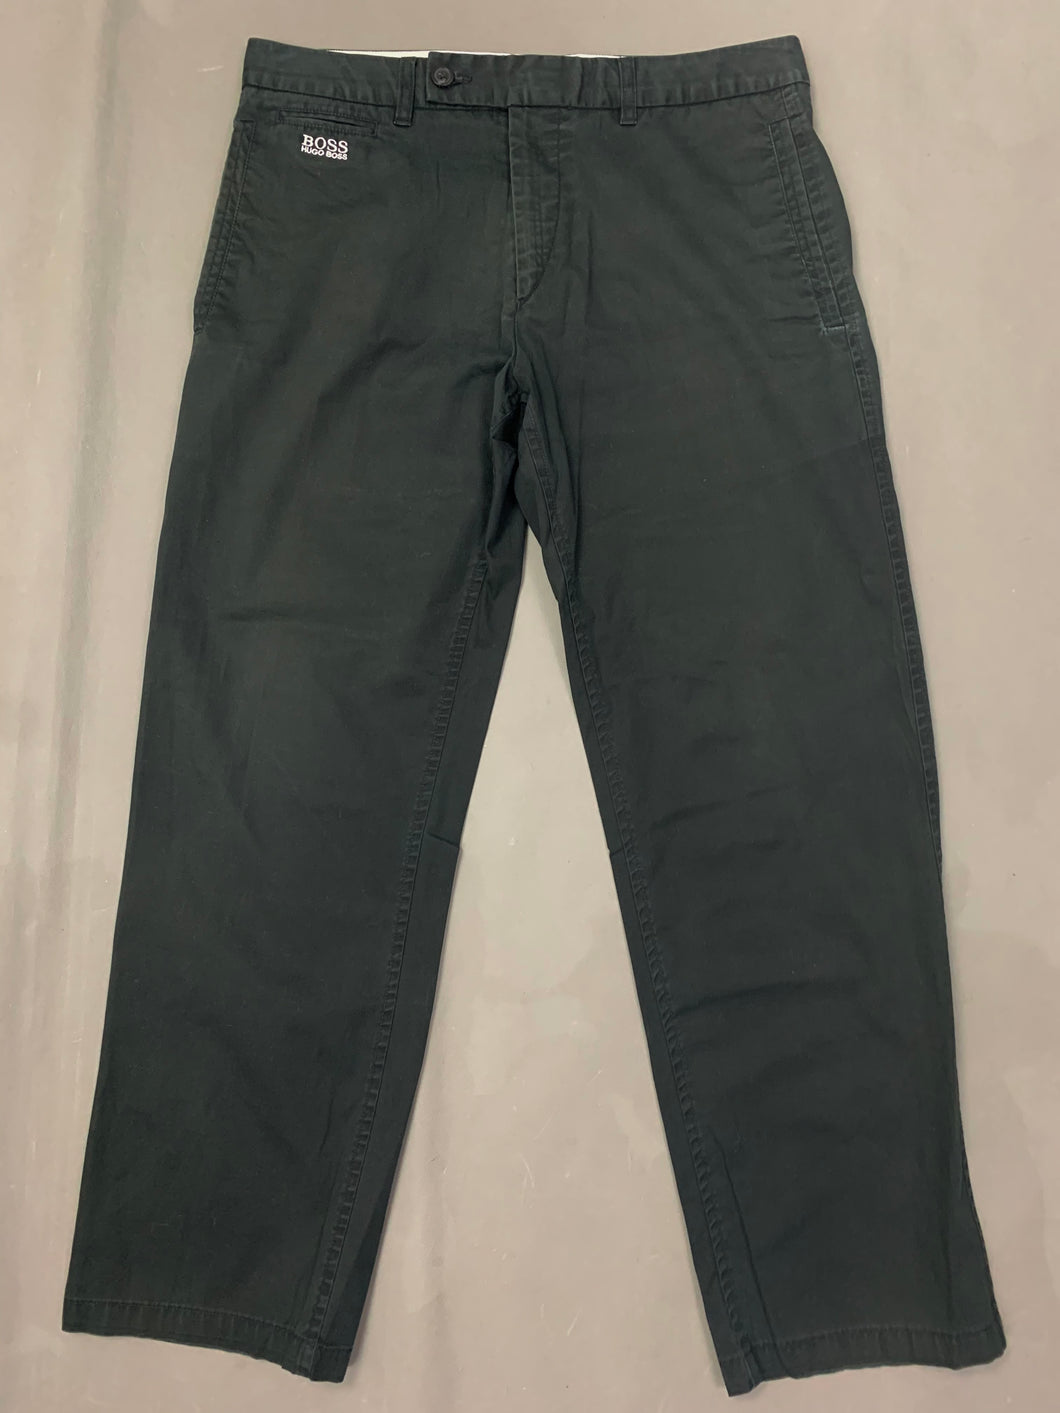 HUGO BOSS Mens HUMERPRO-W Tapered Leg TROUSERS Size Waist 32